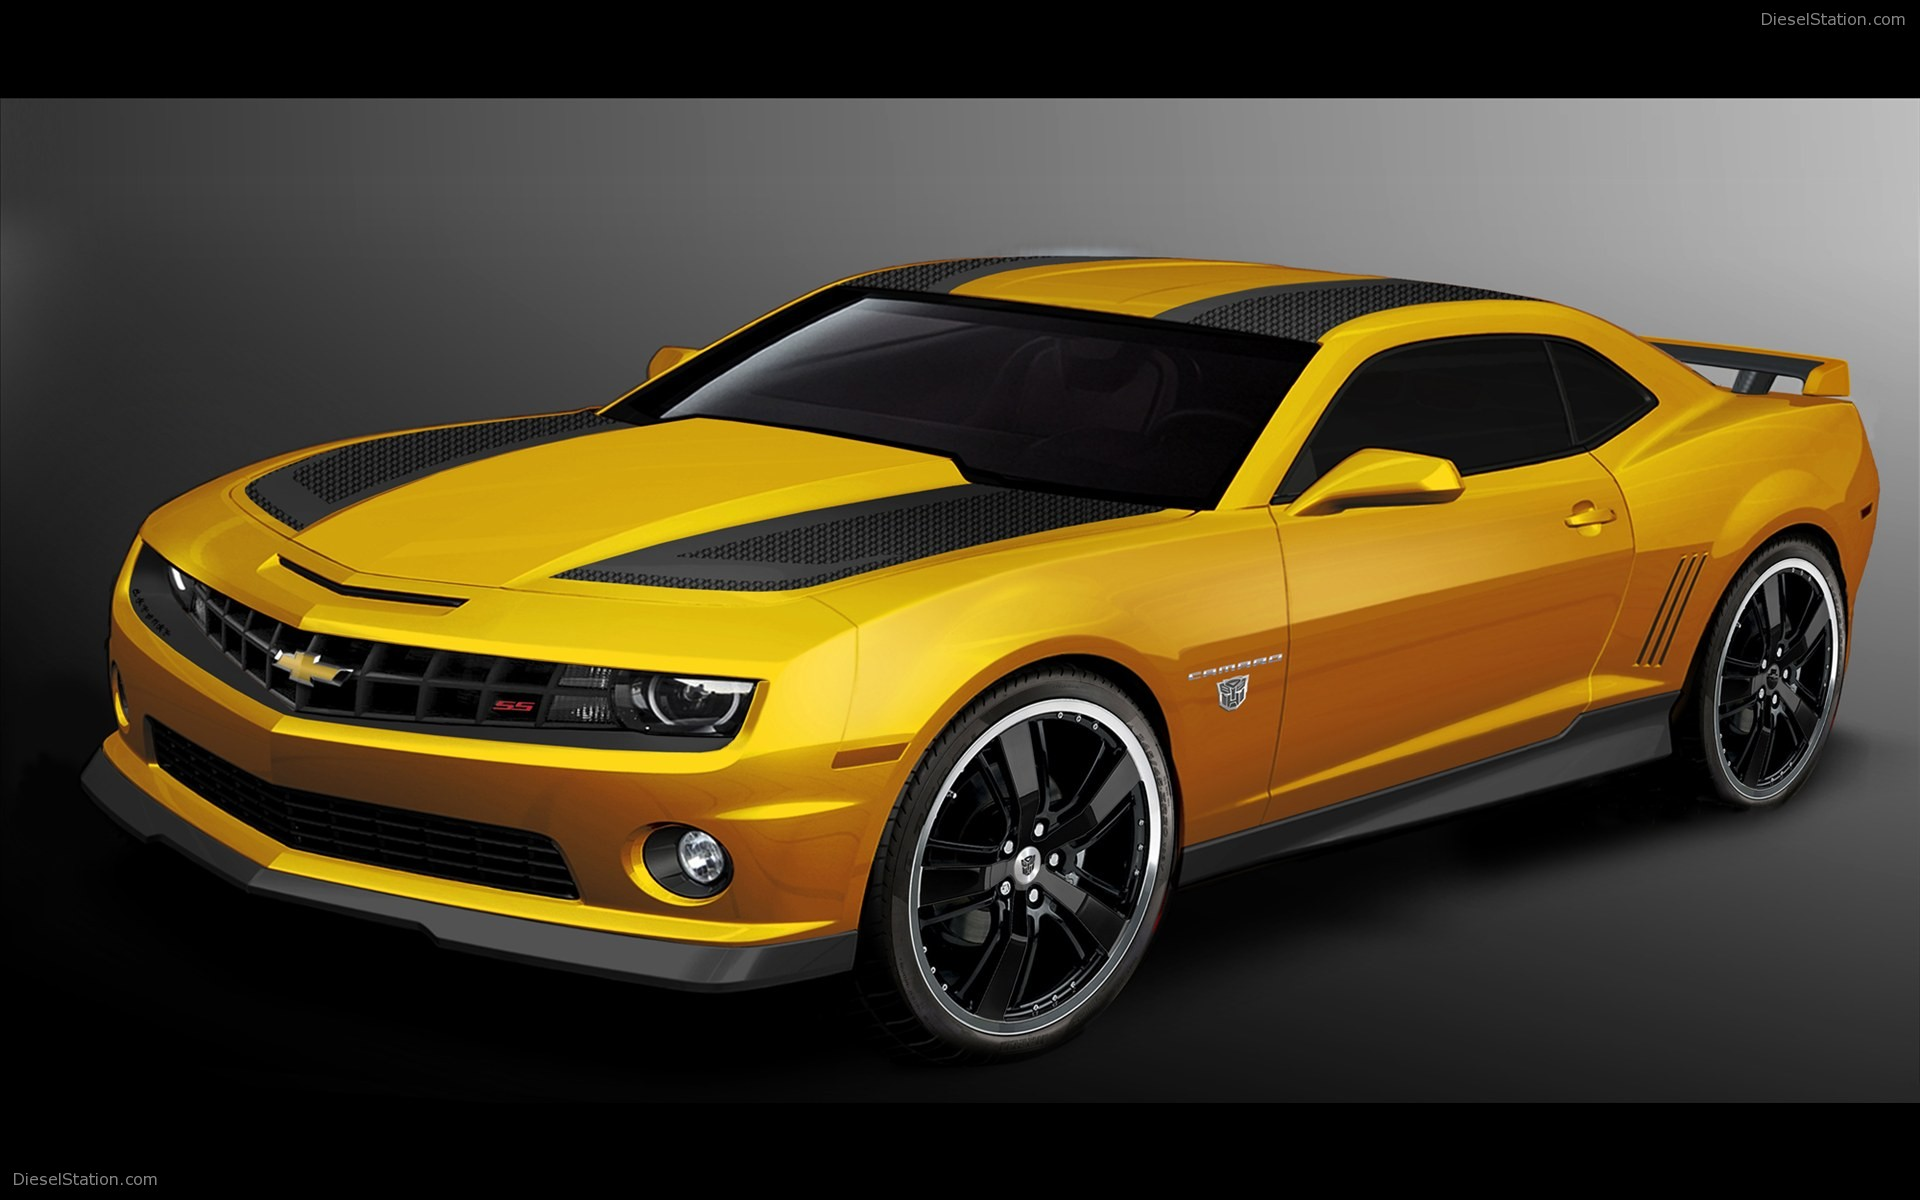 Chevy Camaro Transformers Wallpaper 5286 Hd Wallpapers in Cars 1920x1200